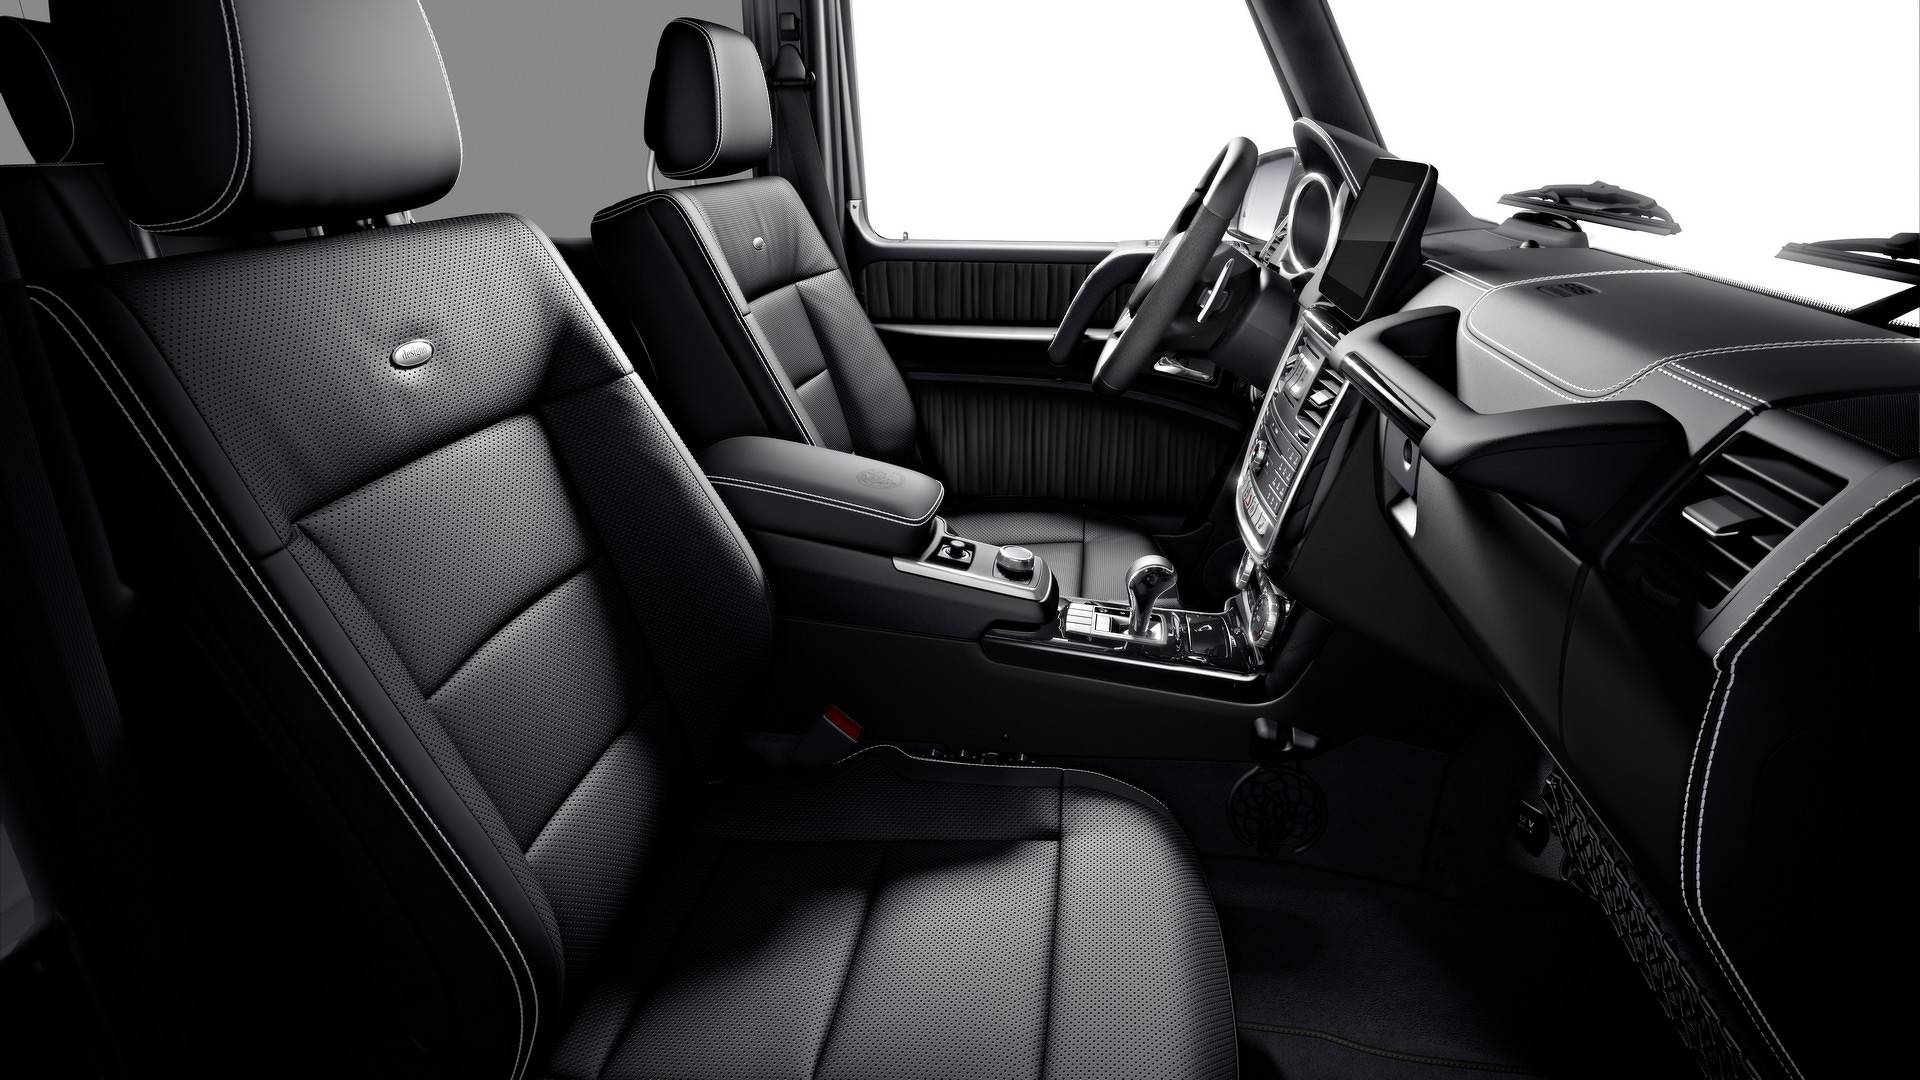 2019 Mercedes-Benz G-Class G350 & G500 Limited Edition Interior Pictures